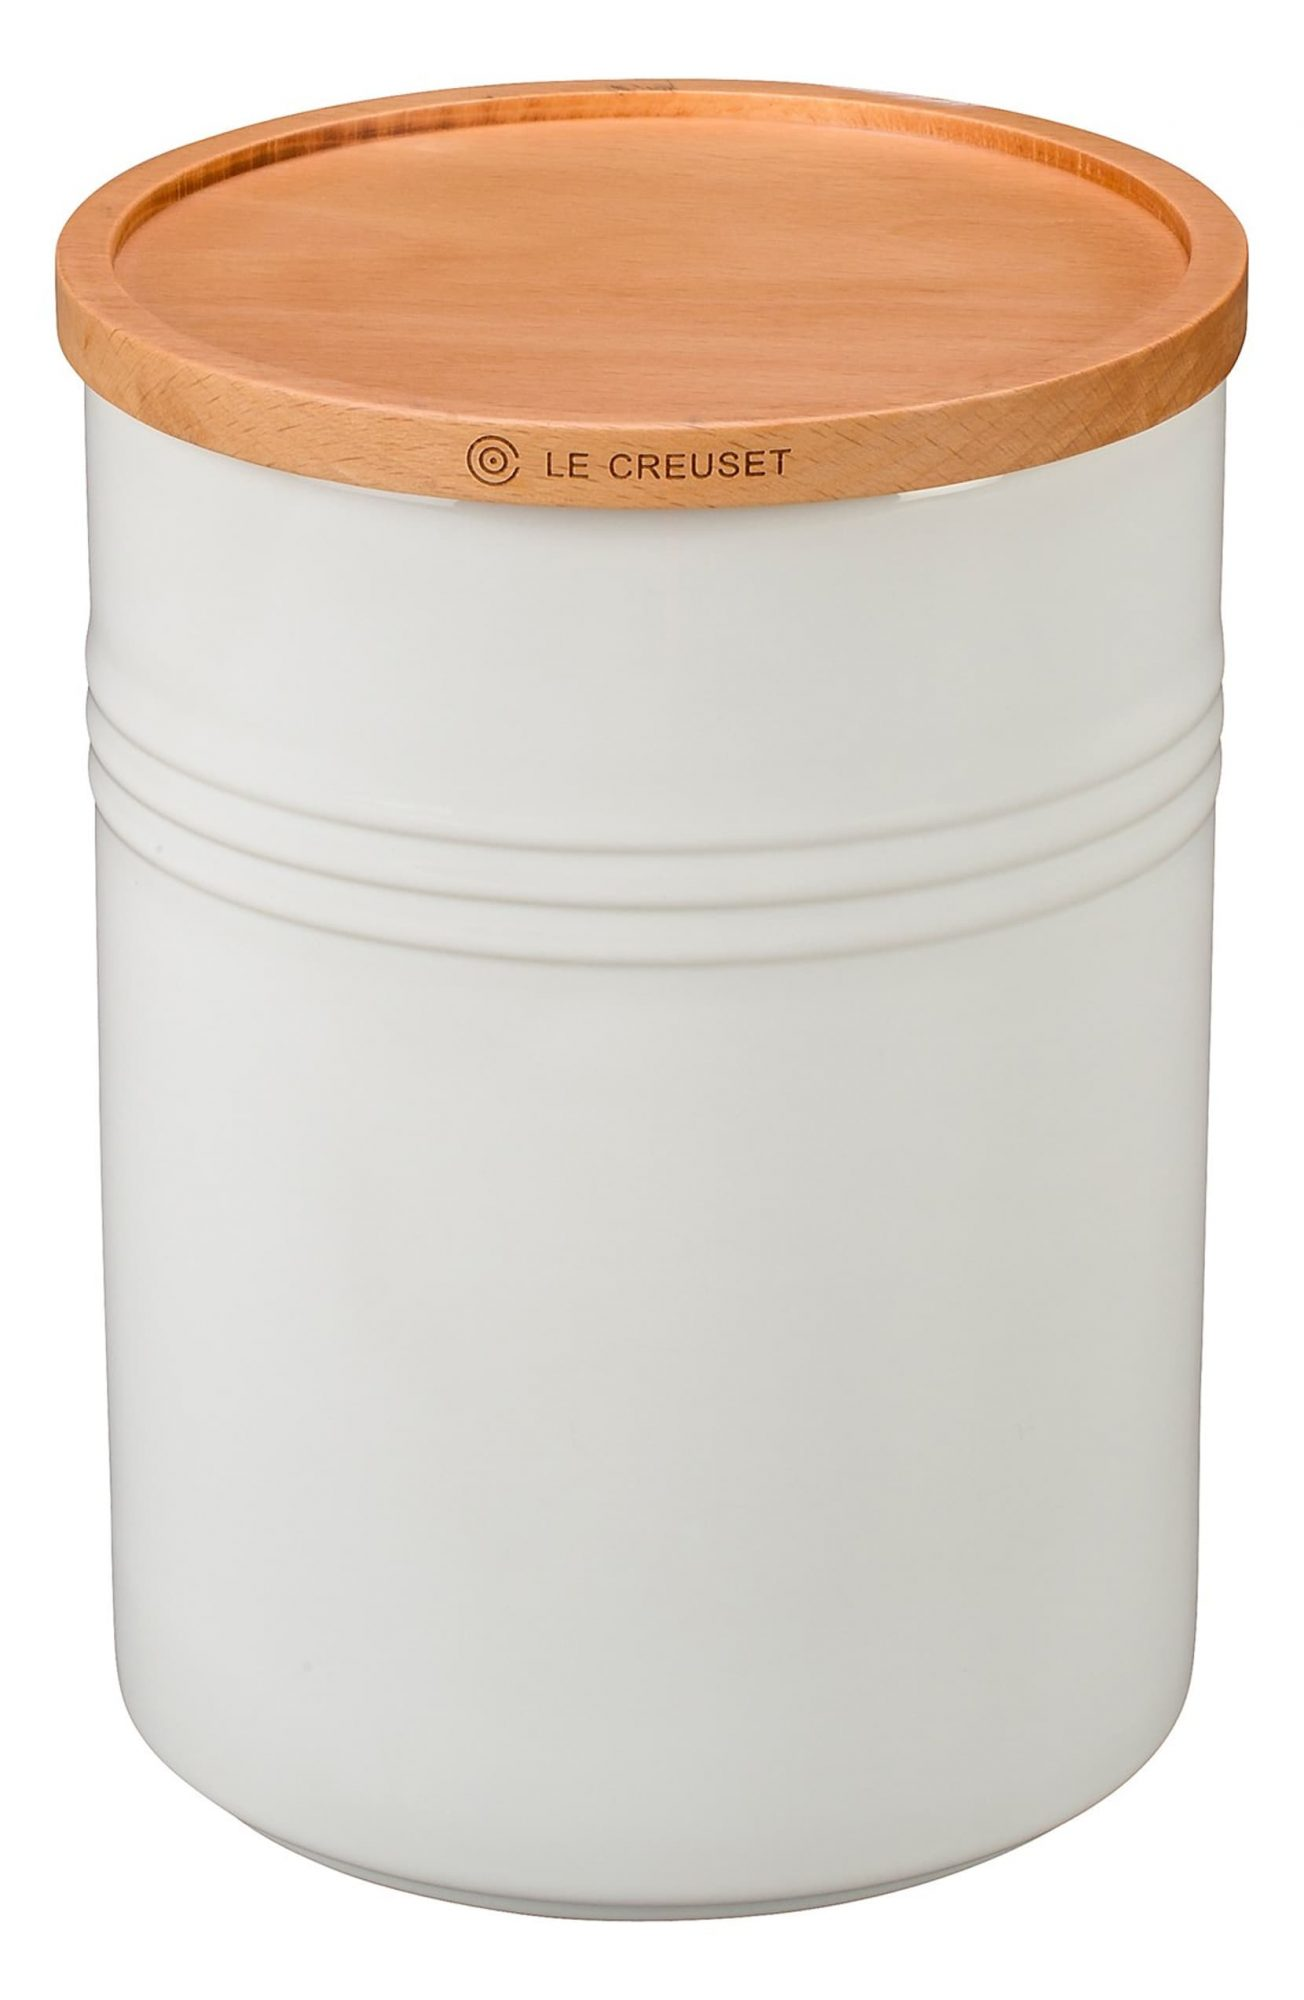 Le Creuset Kitchen Canister in white and wood